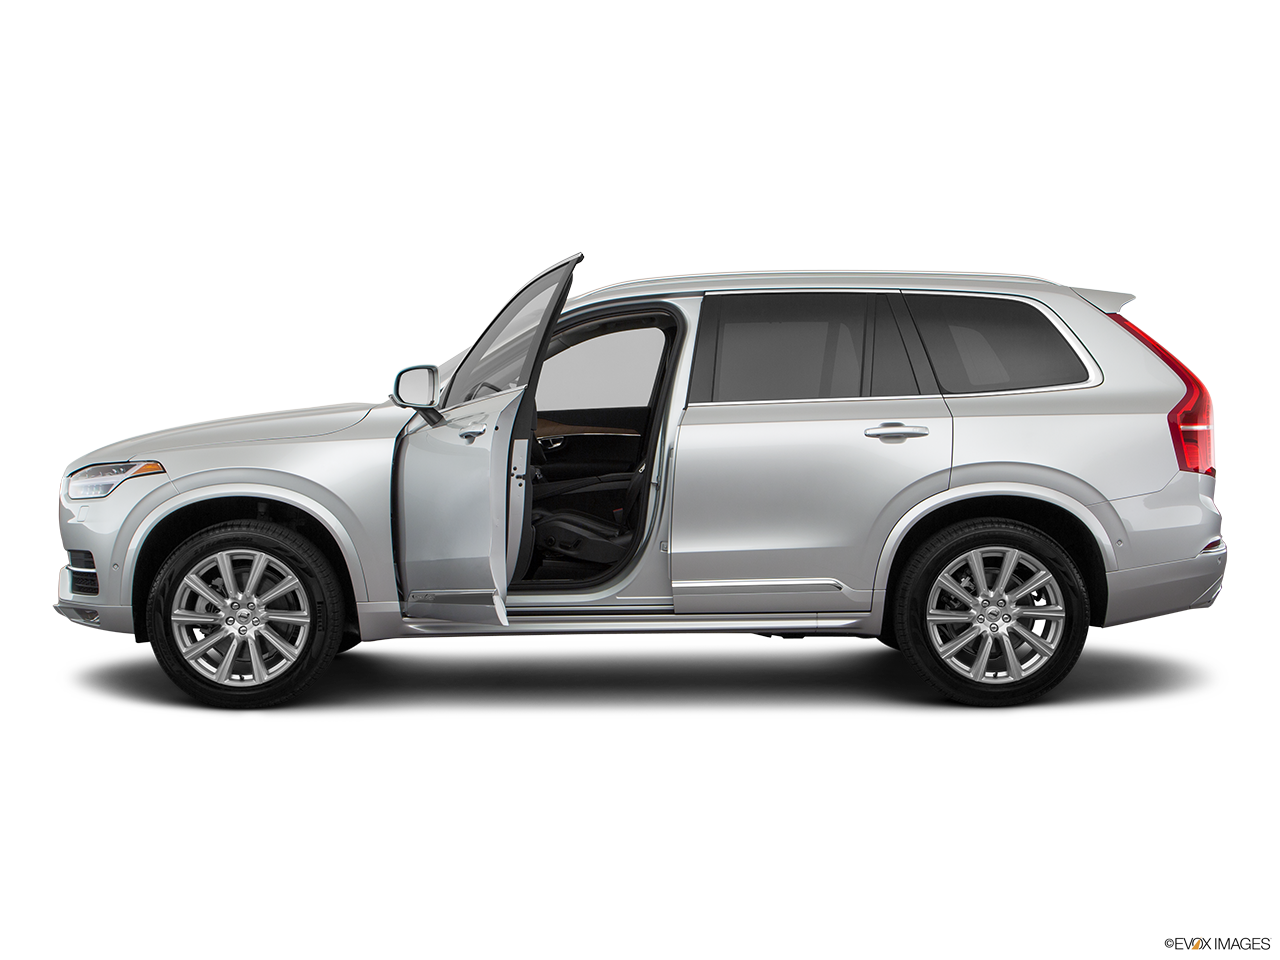 Side view of the Volvo XC90 PHEV